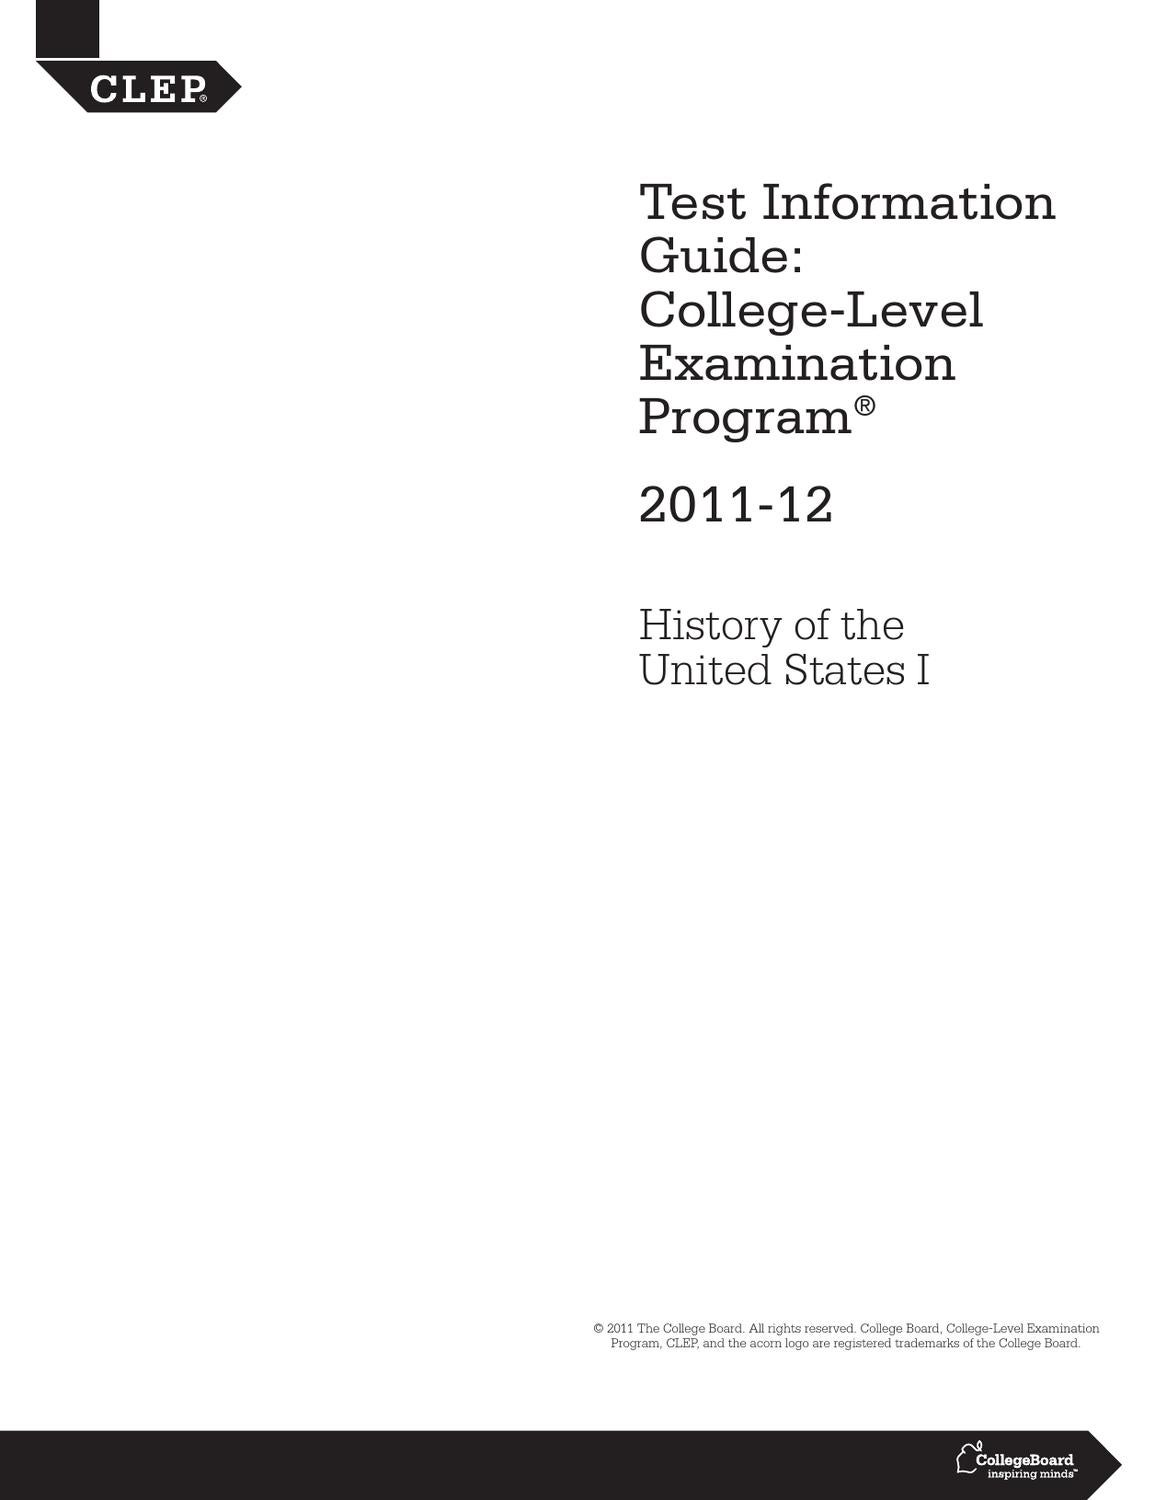 an examination of the united states educational program List of standardized tests in the united states kaufman test of educational achievement (ktea) woodcock-johnson tests of achievement (wj) coop- cooperative admissions examination program undergraduate edit sat - formerly scholastic aptitude test.